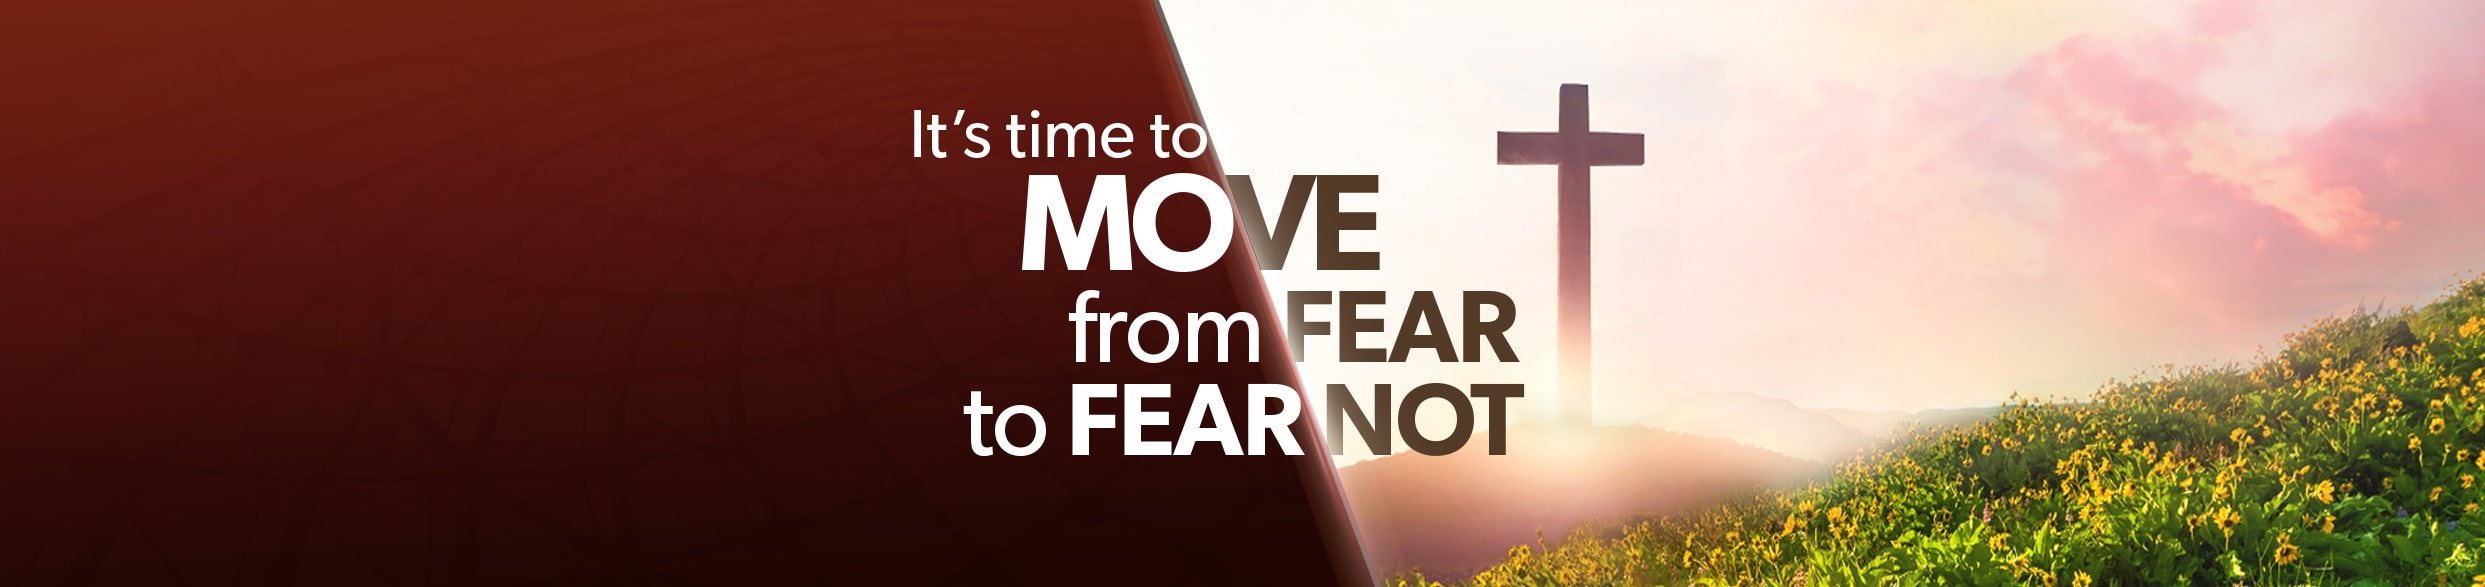 It's Time to Move from Fear to Fear Not